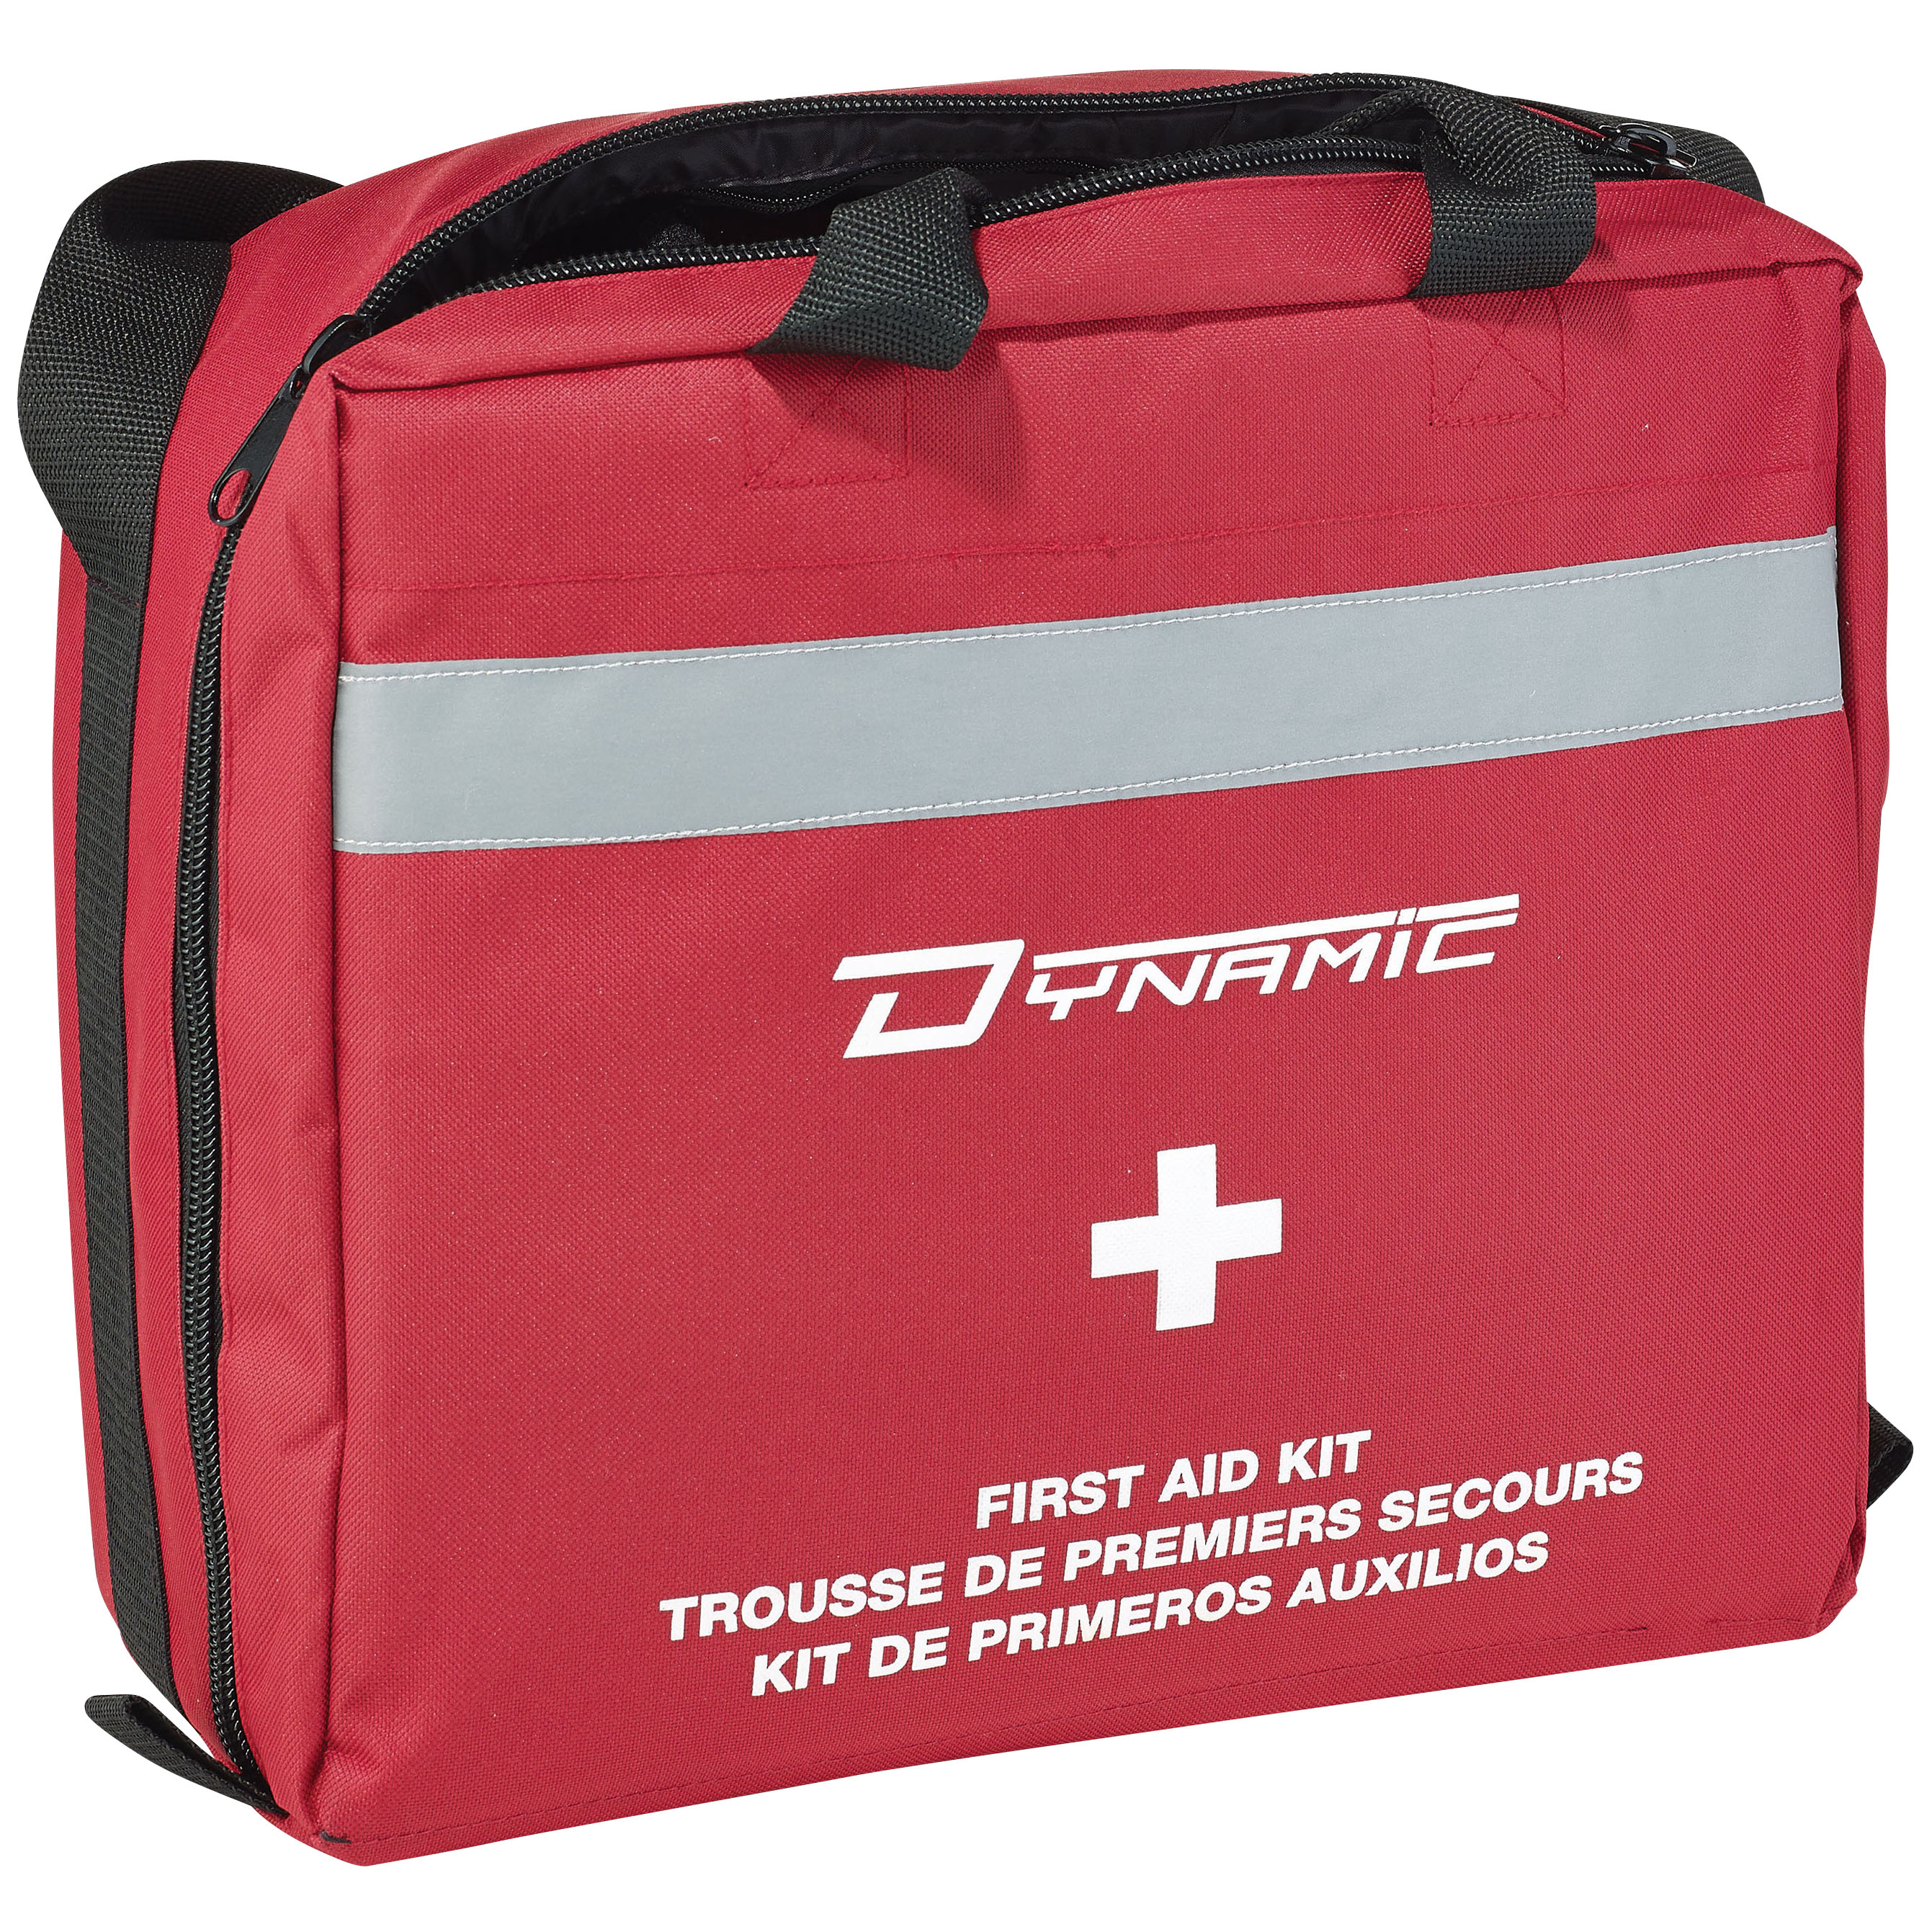 CSA standard First aid kit Type 2 Large in nylon bag